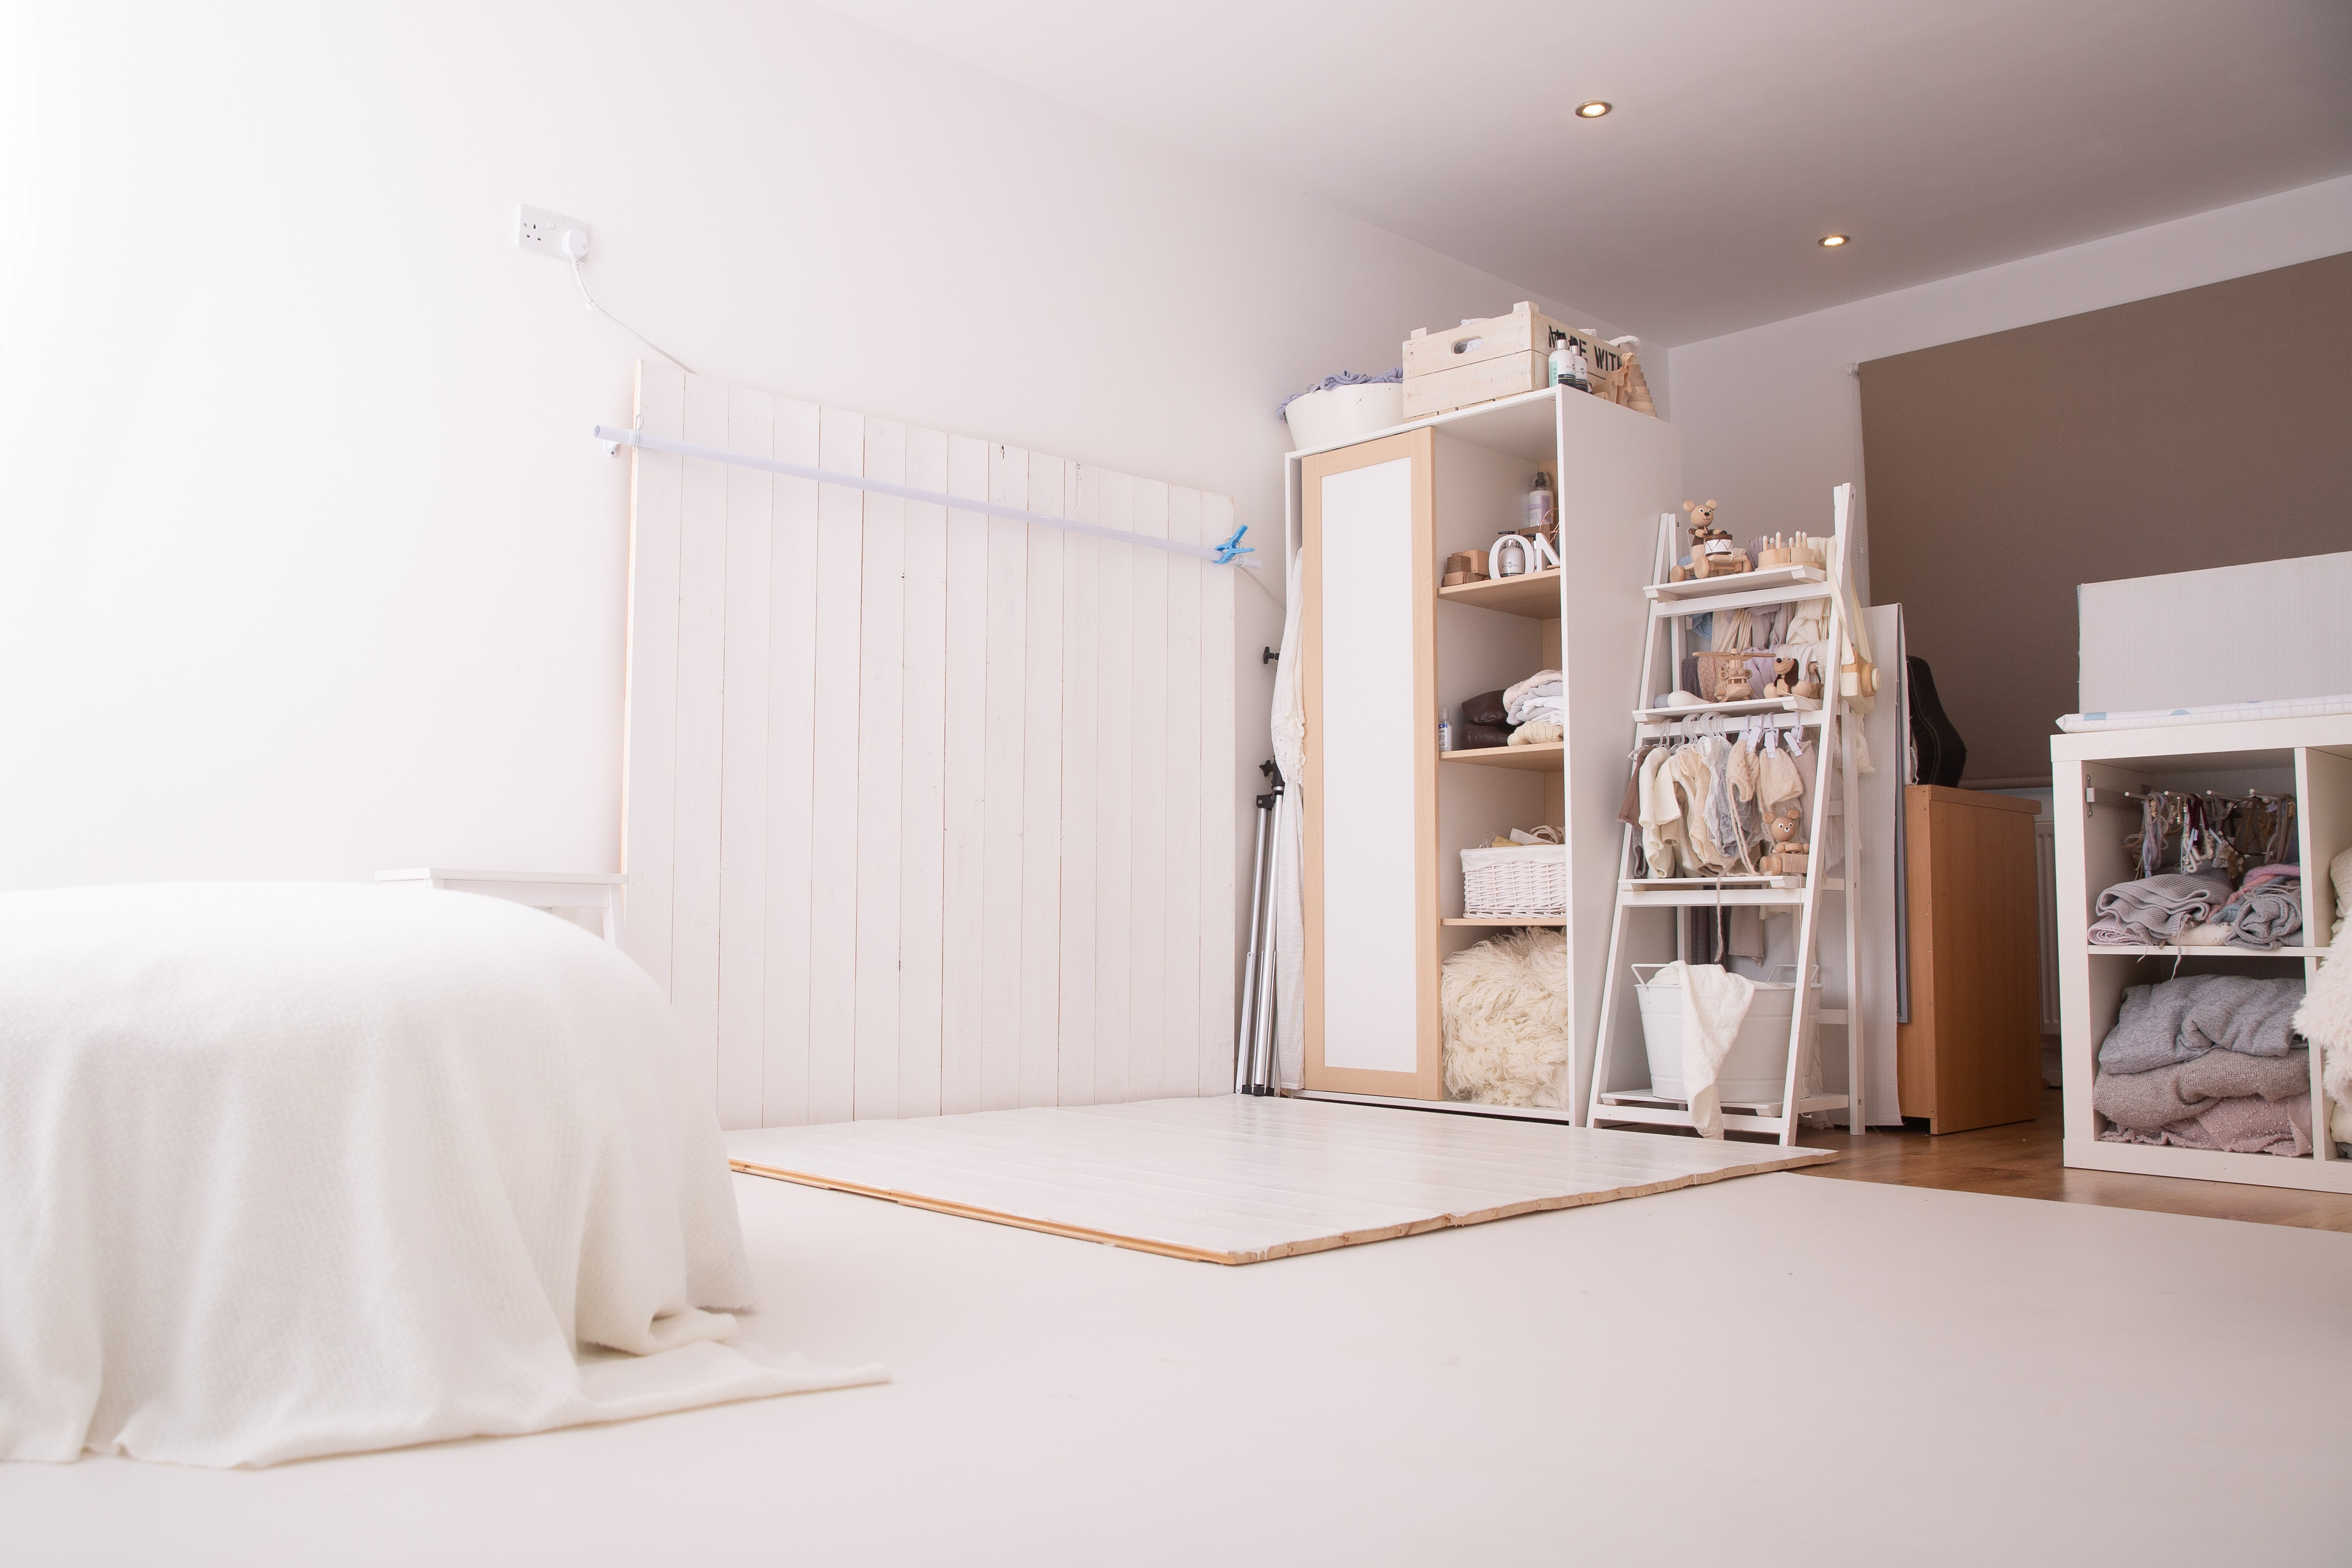 image of a baby studio in norwich